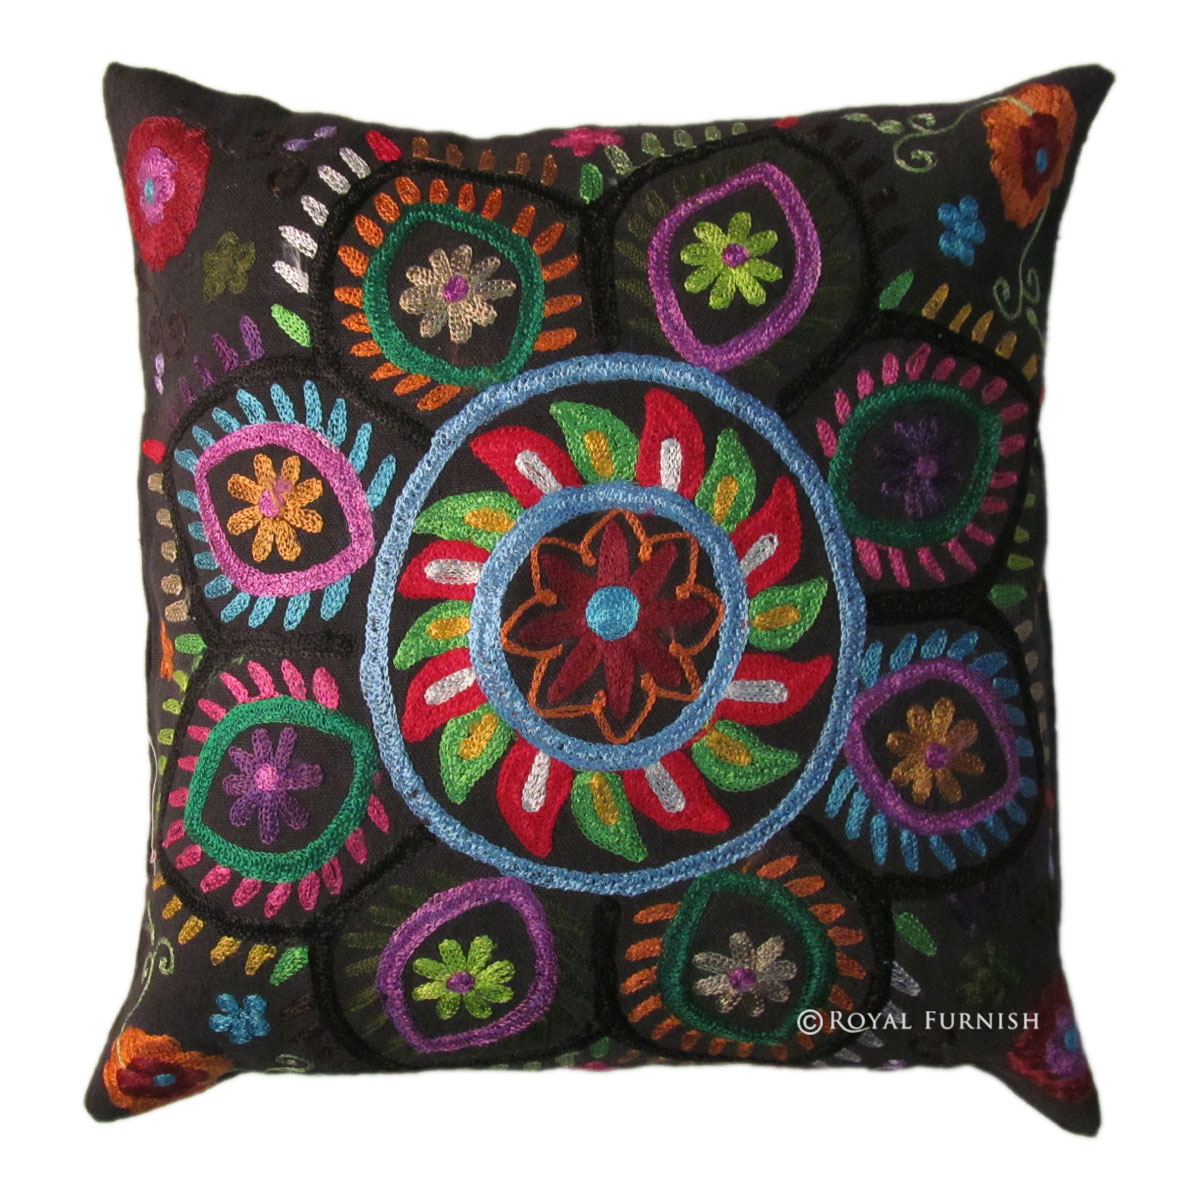 16 Quot Indian Suzani Embroidered Decorative Throw Pillow Case